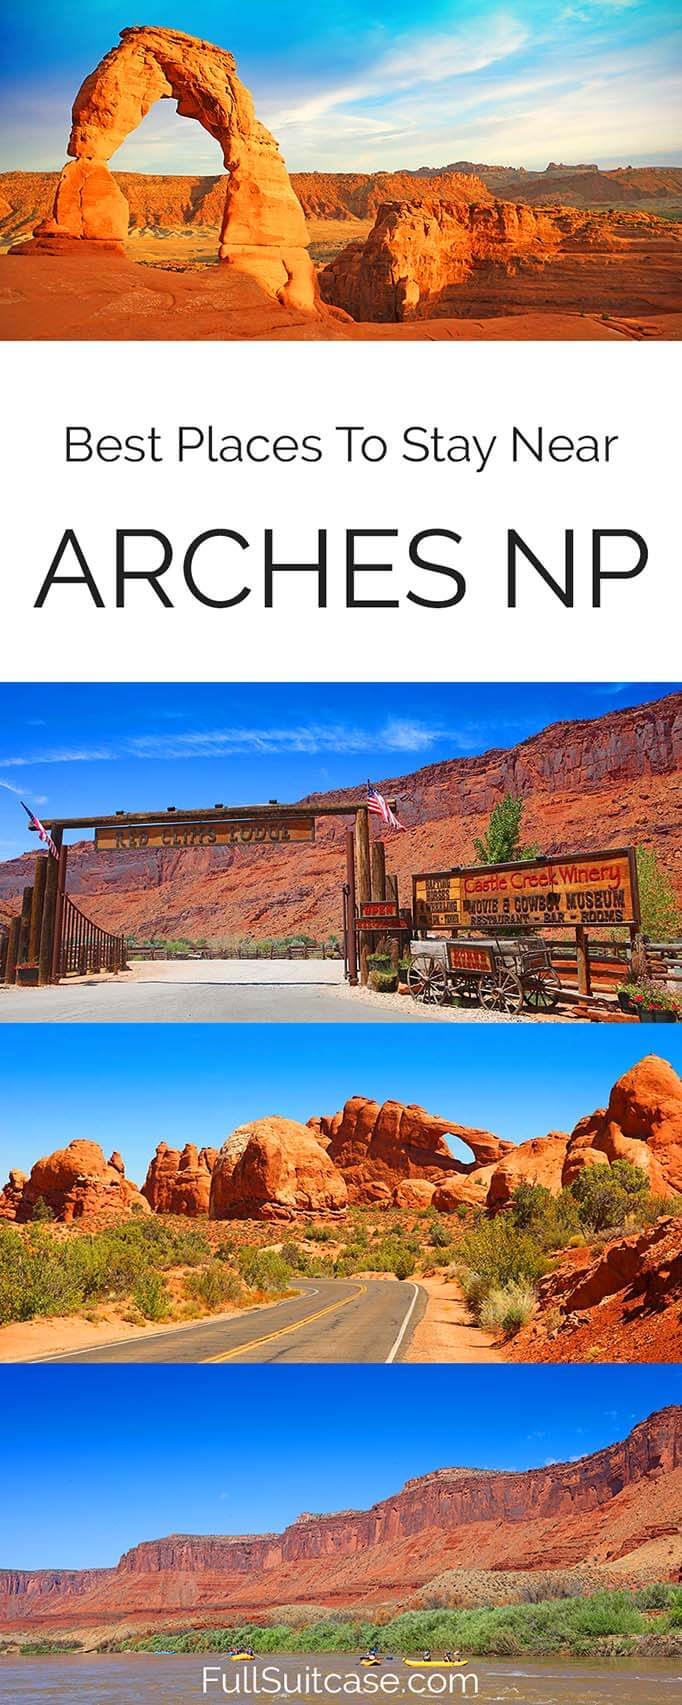 Best Moab hotels and accommodation near Arches National Park in Utah USA